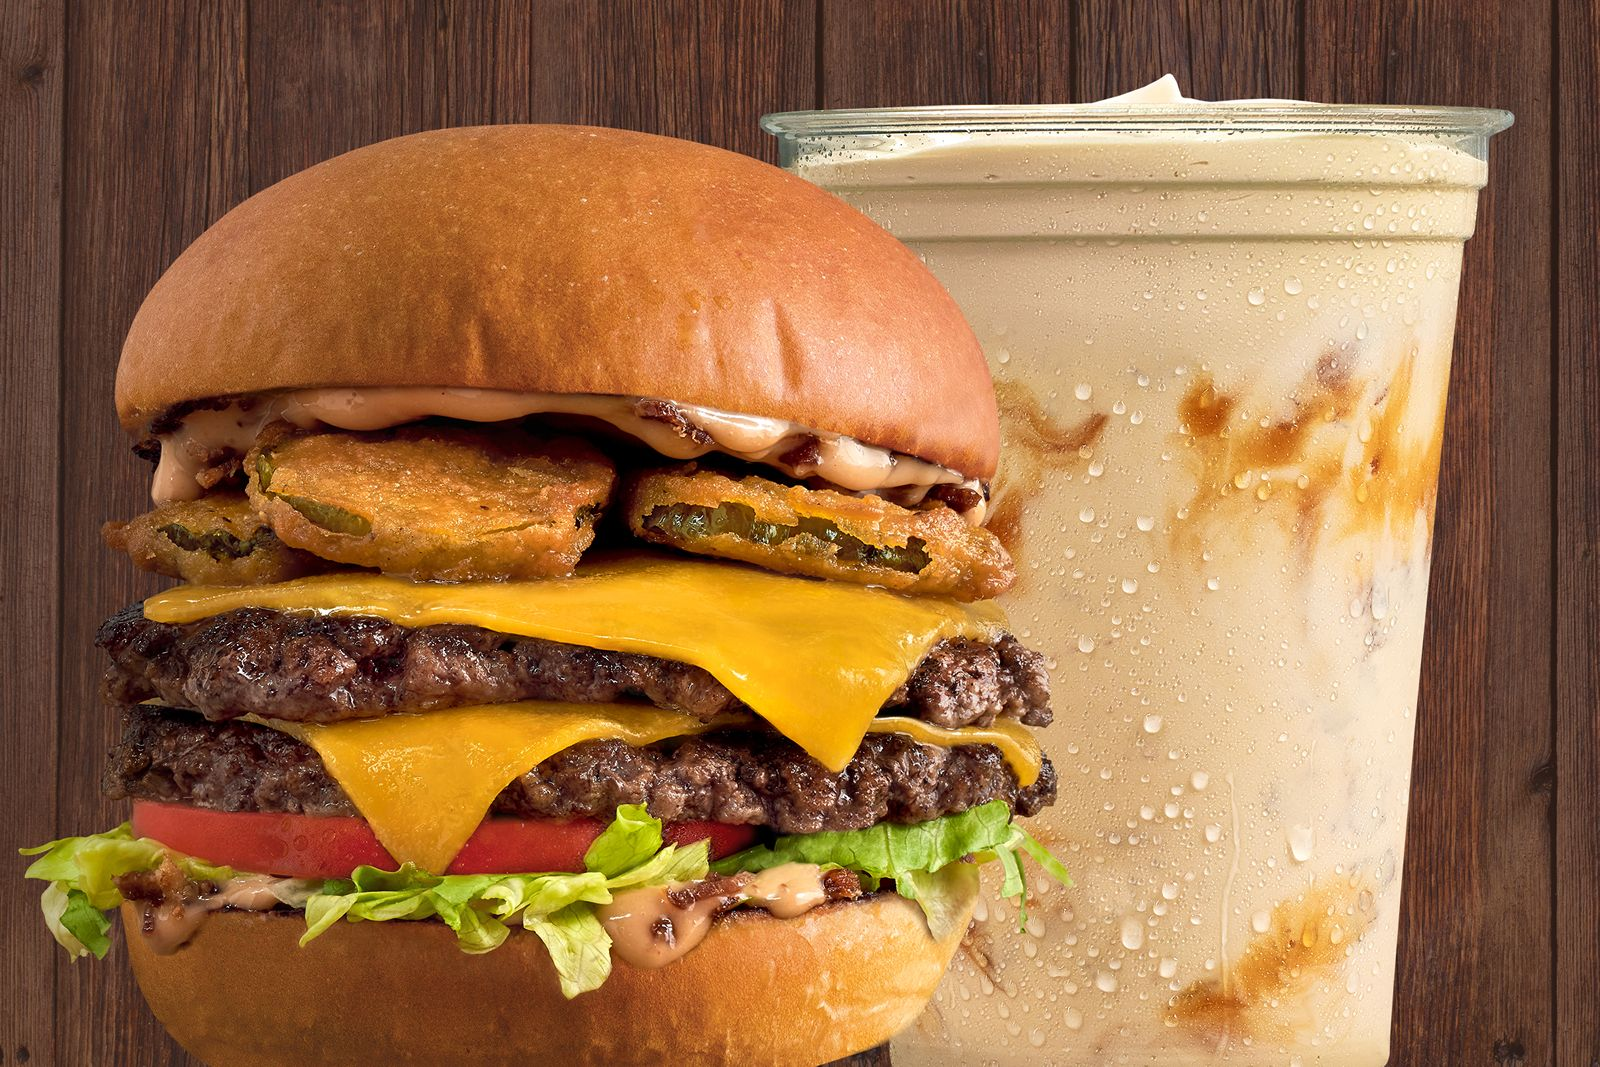 MOOYAH Burgers, Fries & Shakes Pays Homage to its Lone Star State Roots With its Newest Limited Time Offering The Big Dill Burger and Texas Pecan Shake